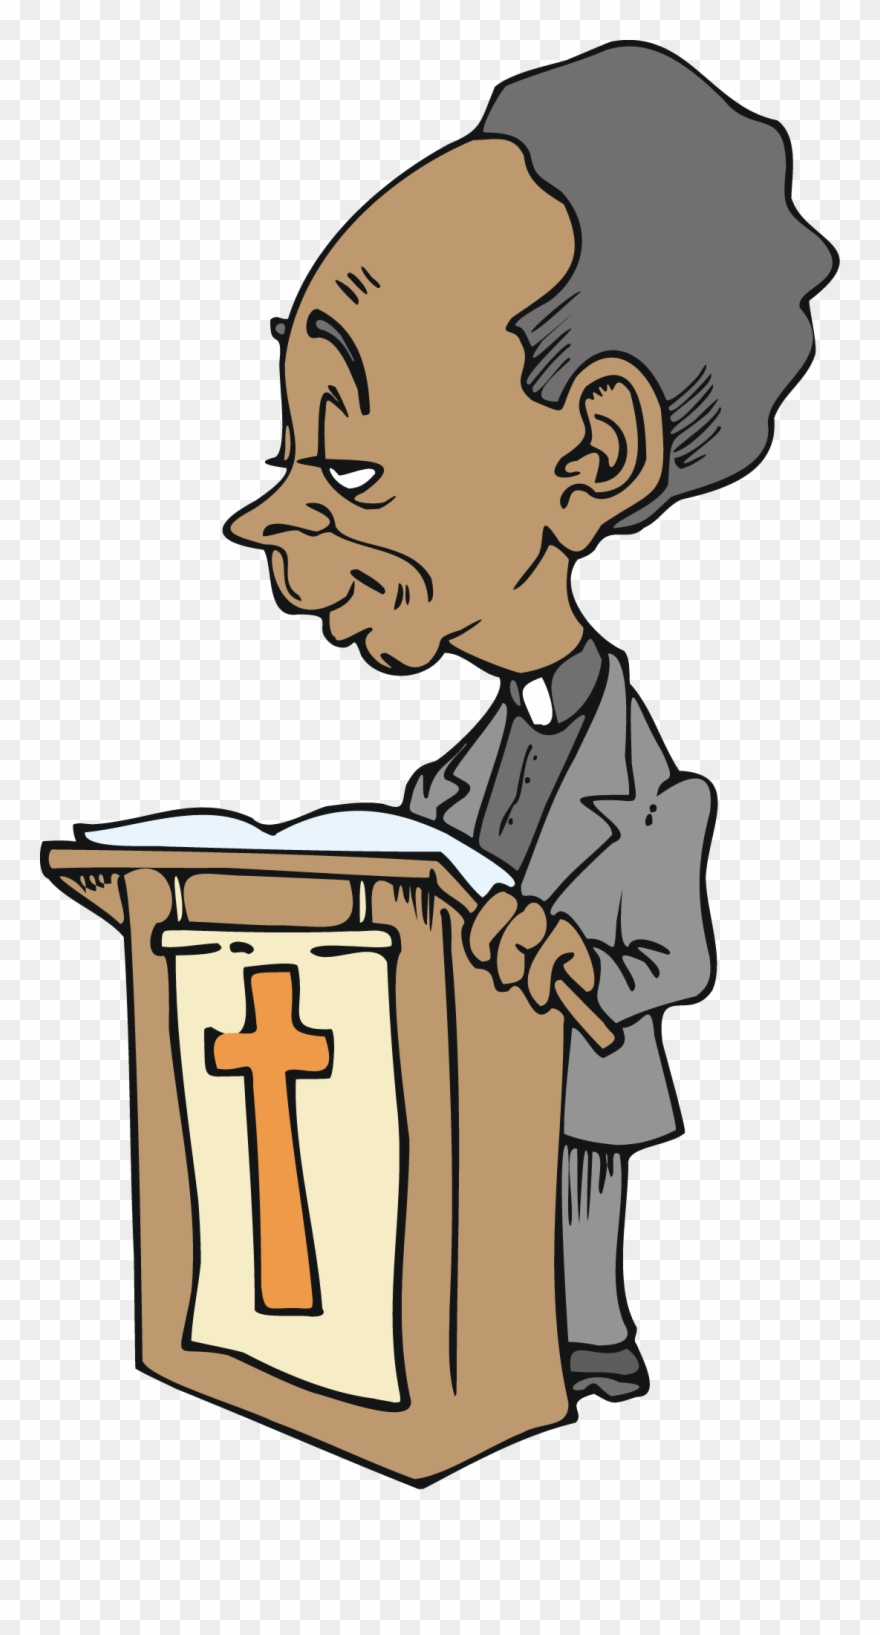 hight resolution of free african american cartoon character preacher vector clipart